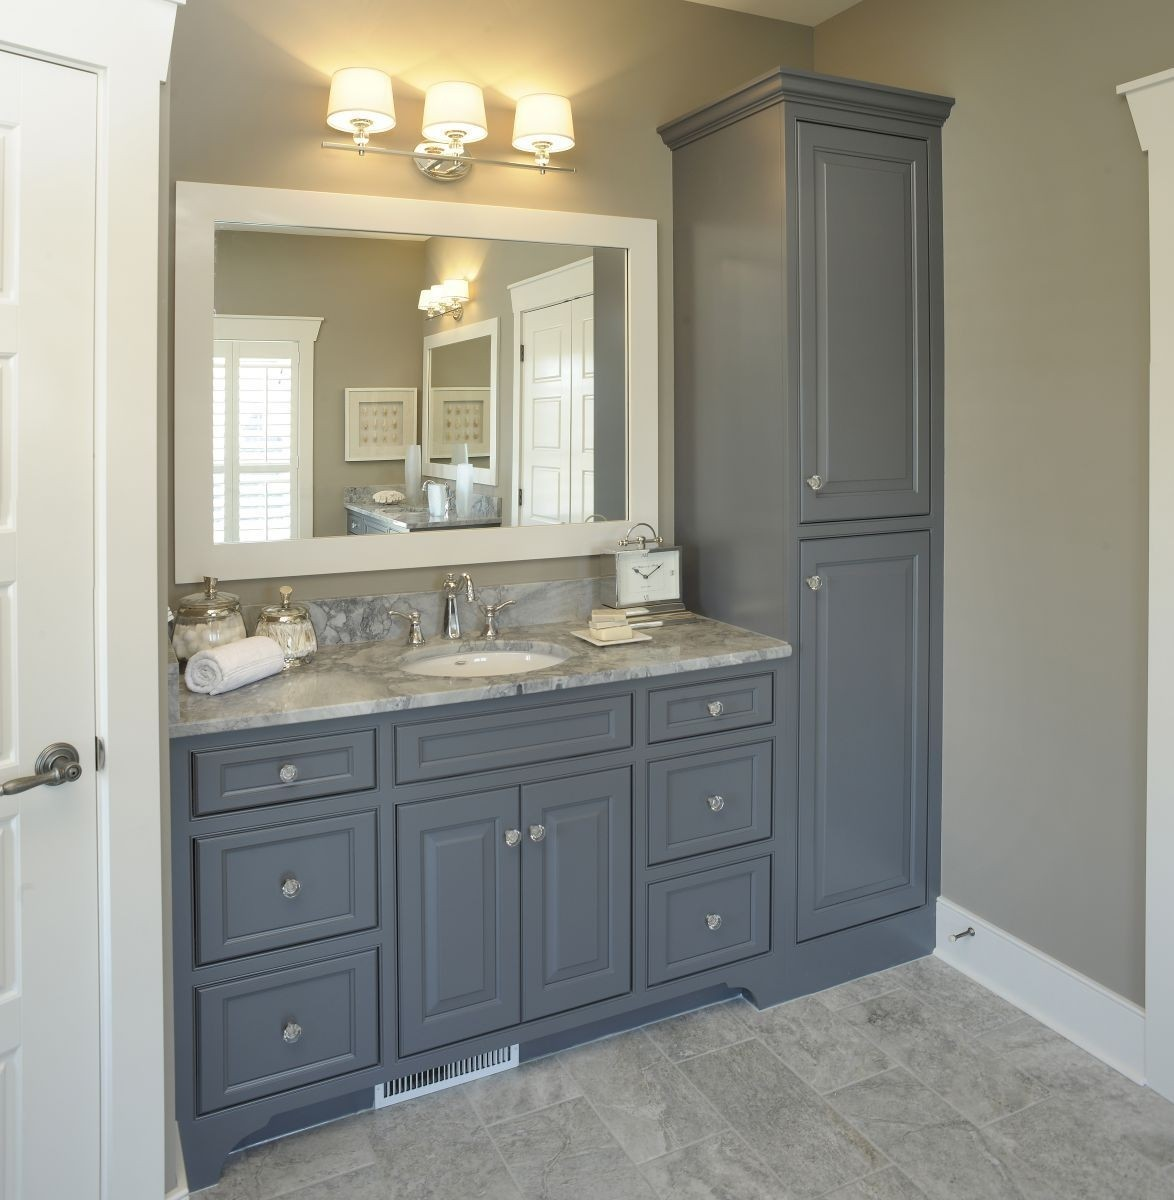 Superbe Tall Linen Cabinets For Bathroom